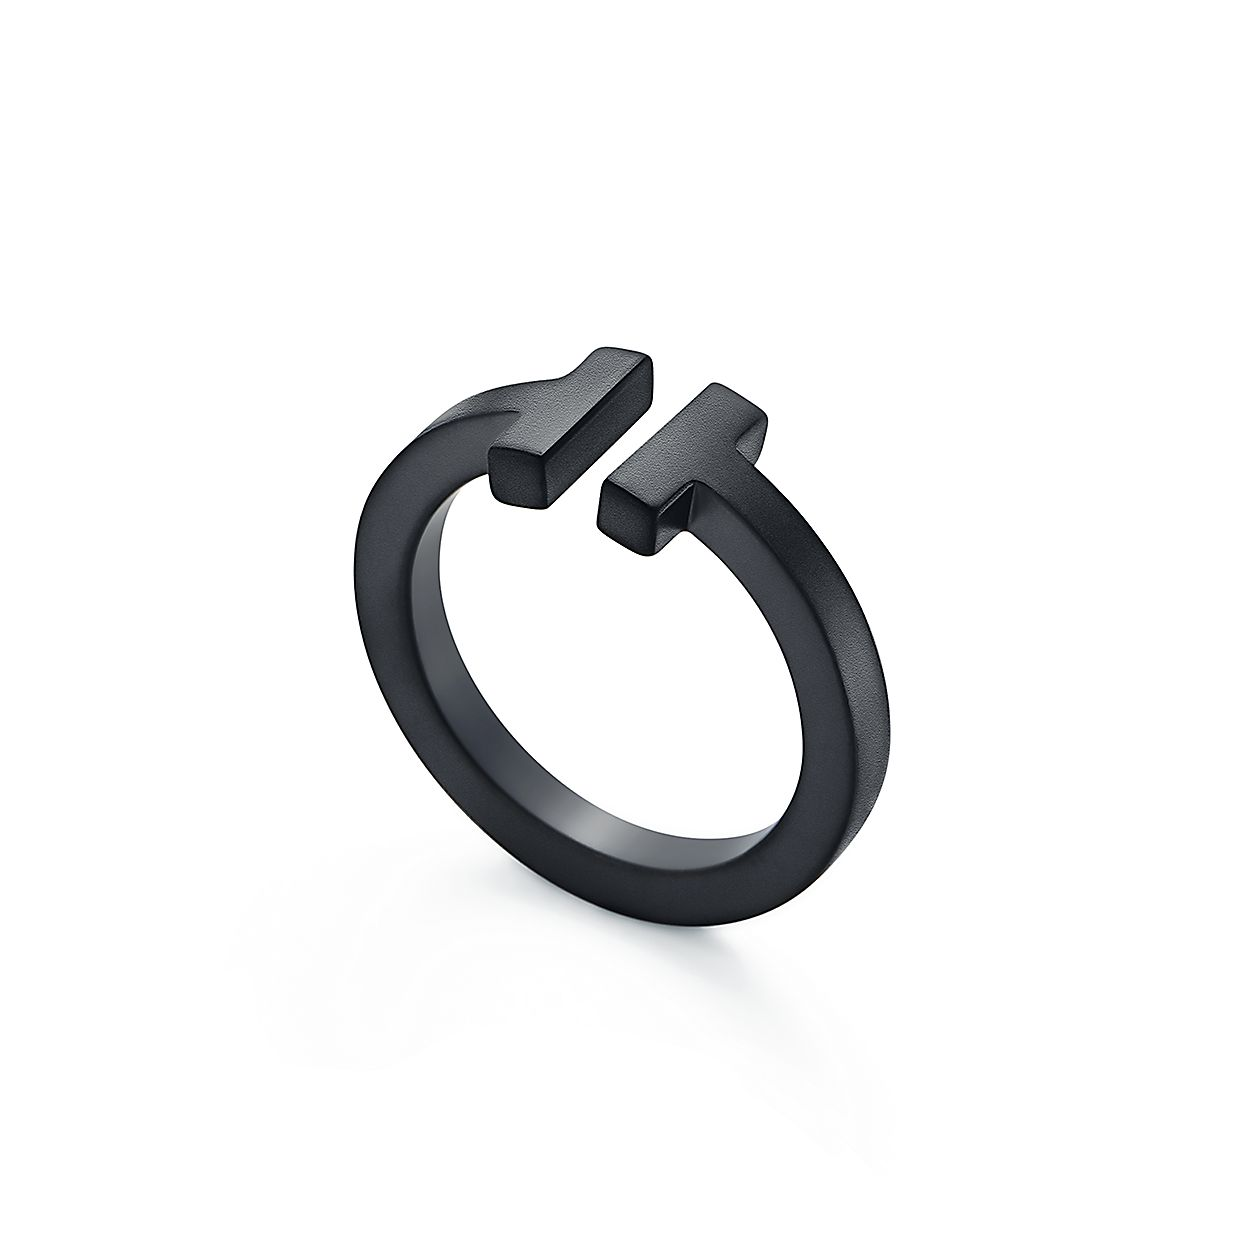 b7ea6c8205 Tiffany T square ring in black-coated steel. | Tiffany & Co.